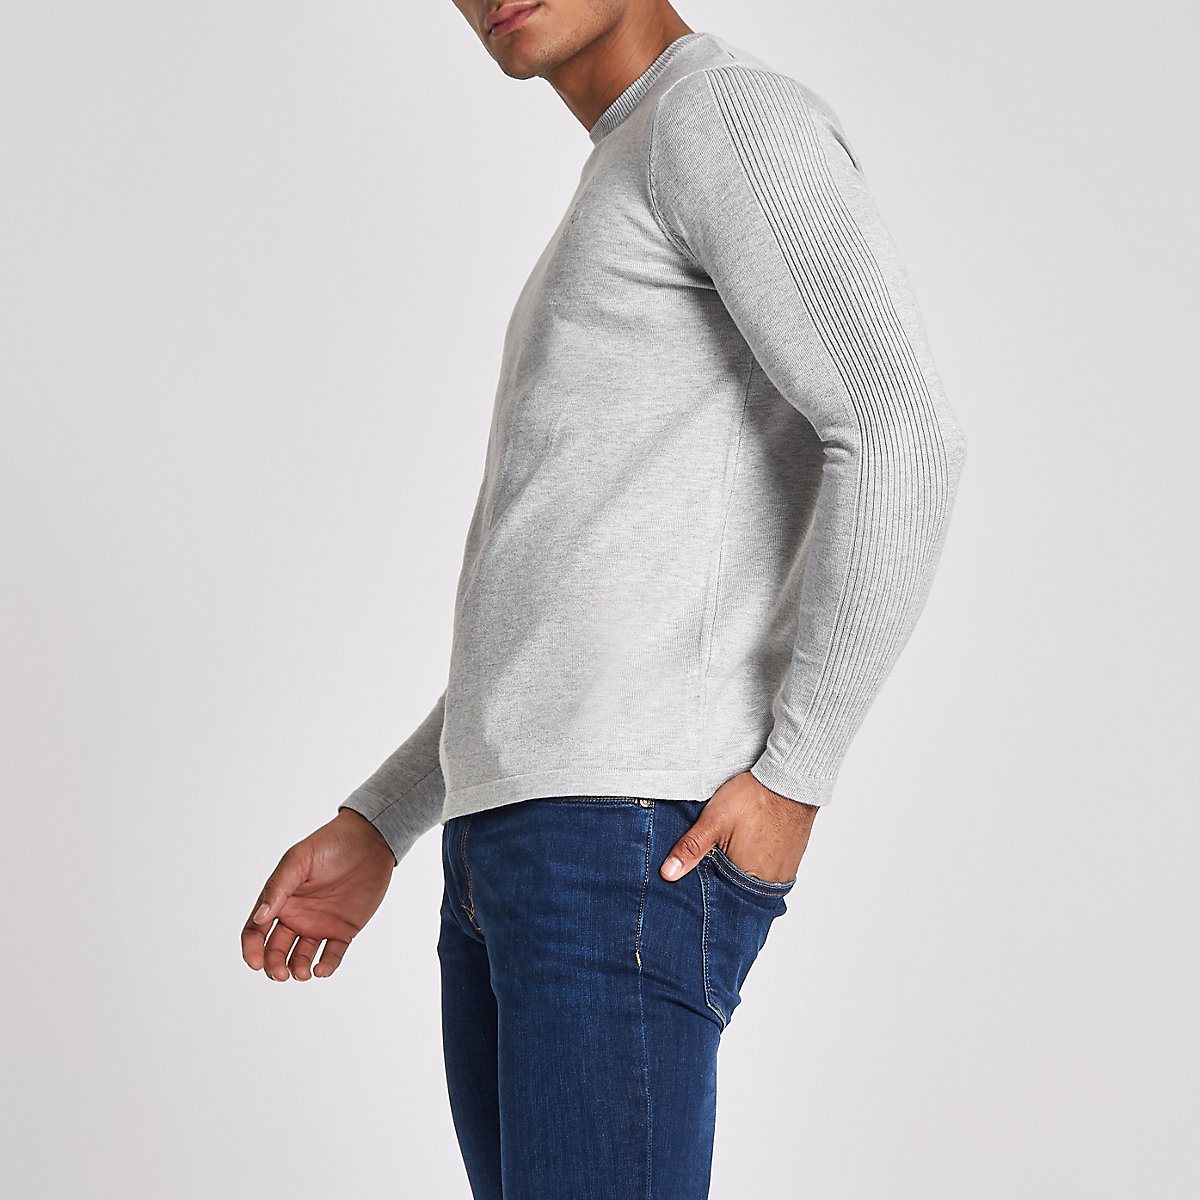 R96 grey slim fit crew neck jumper